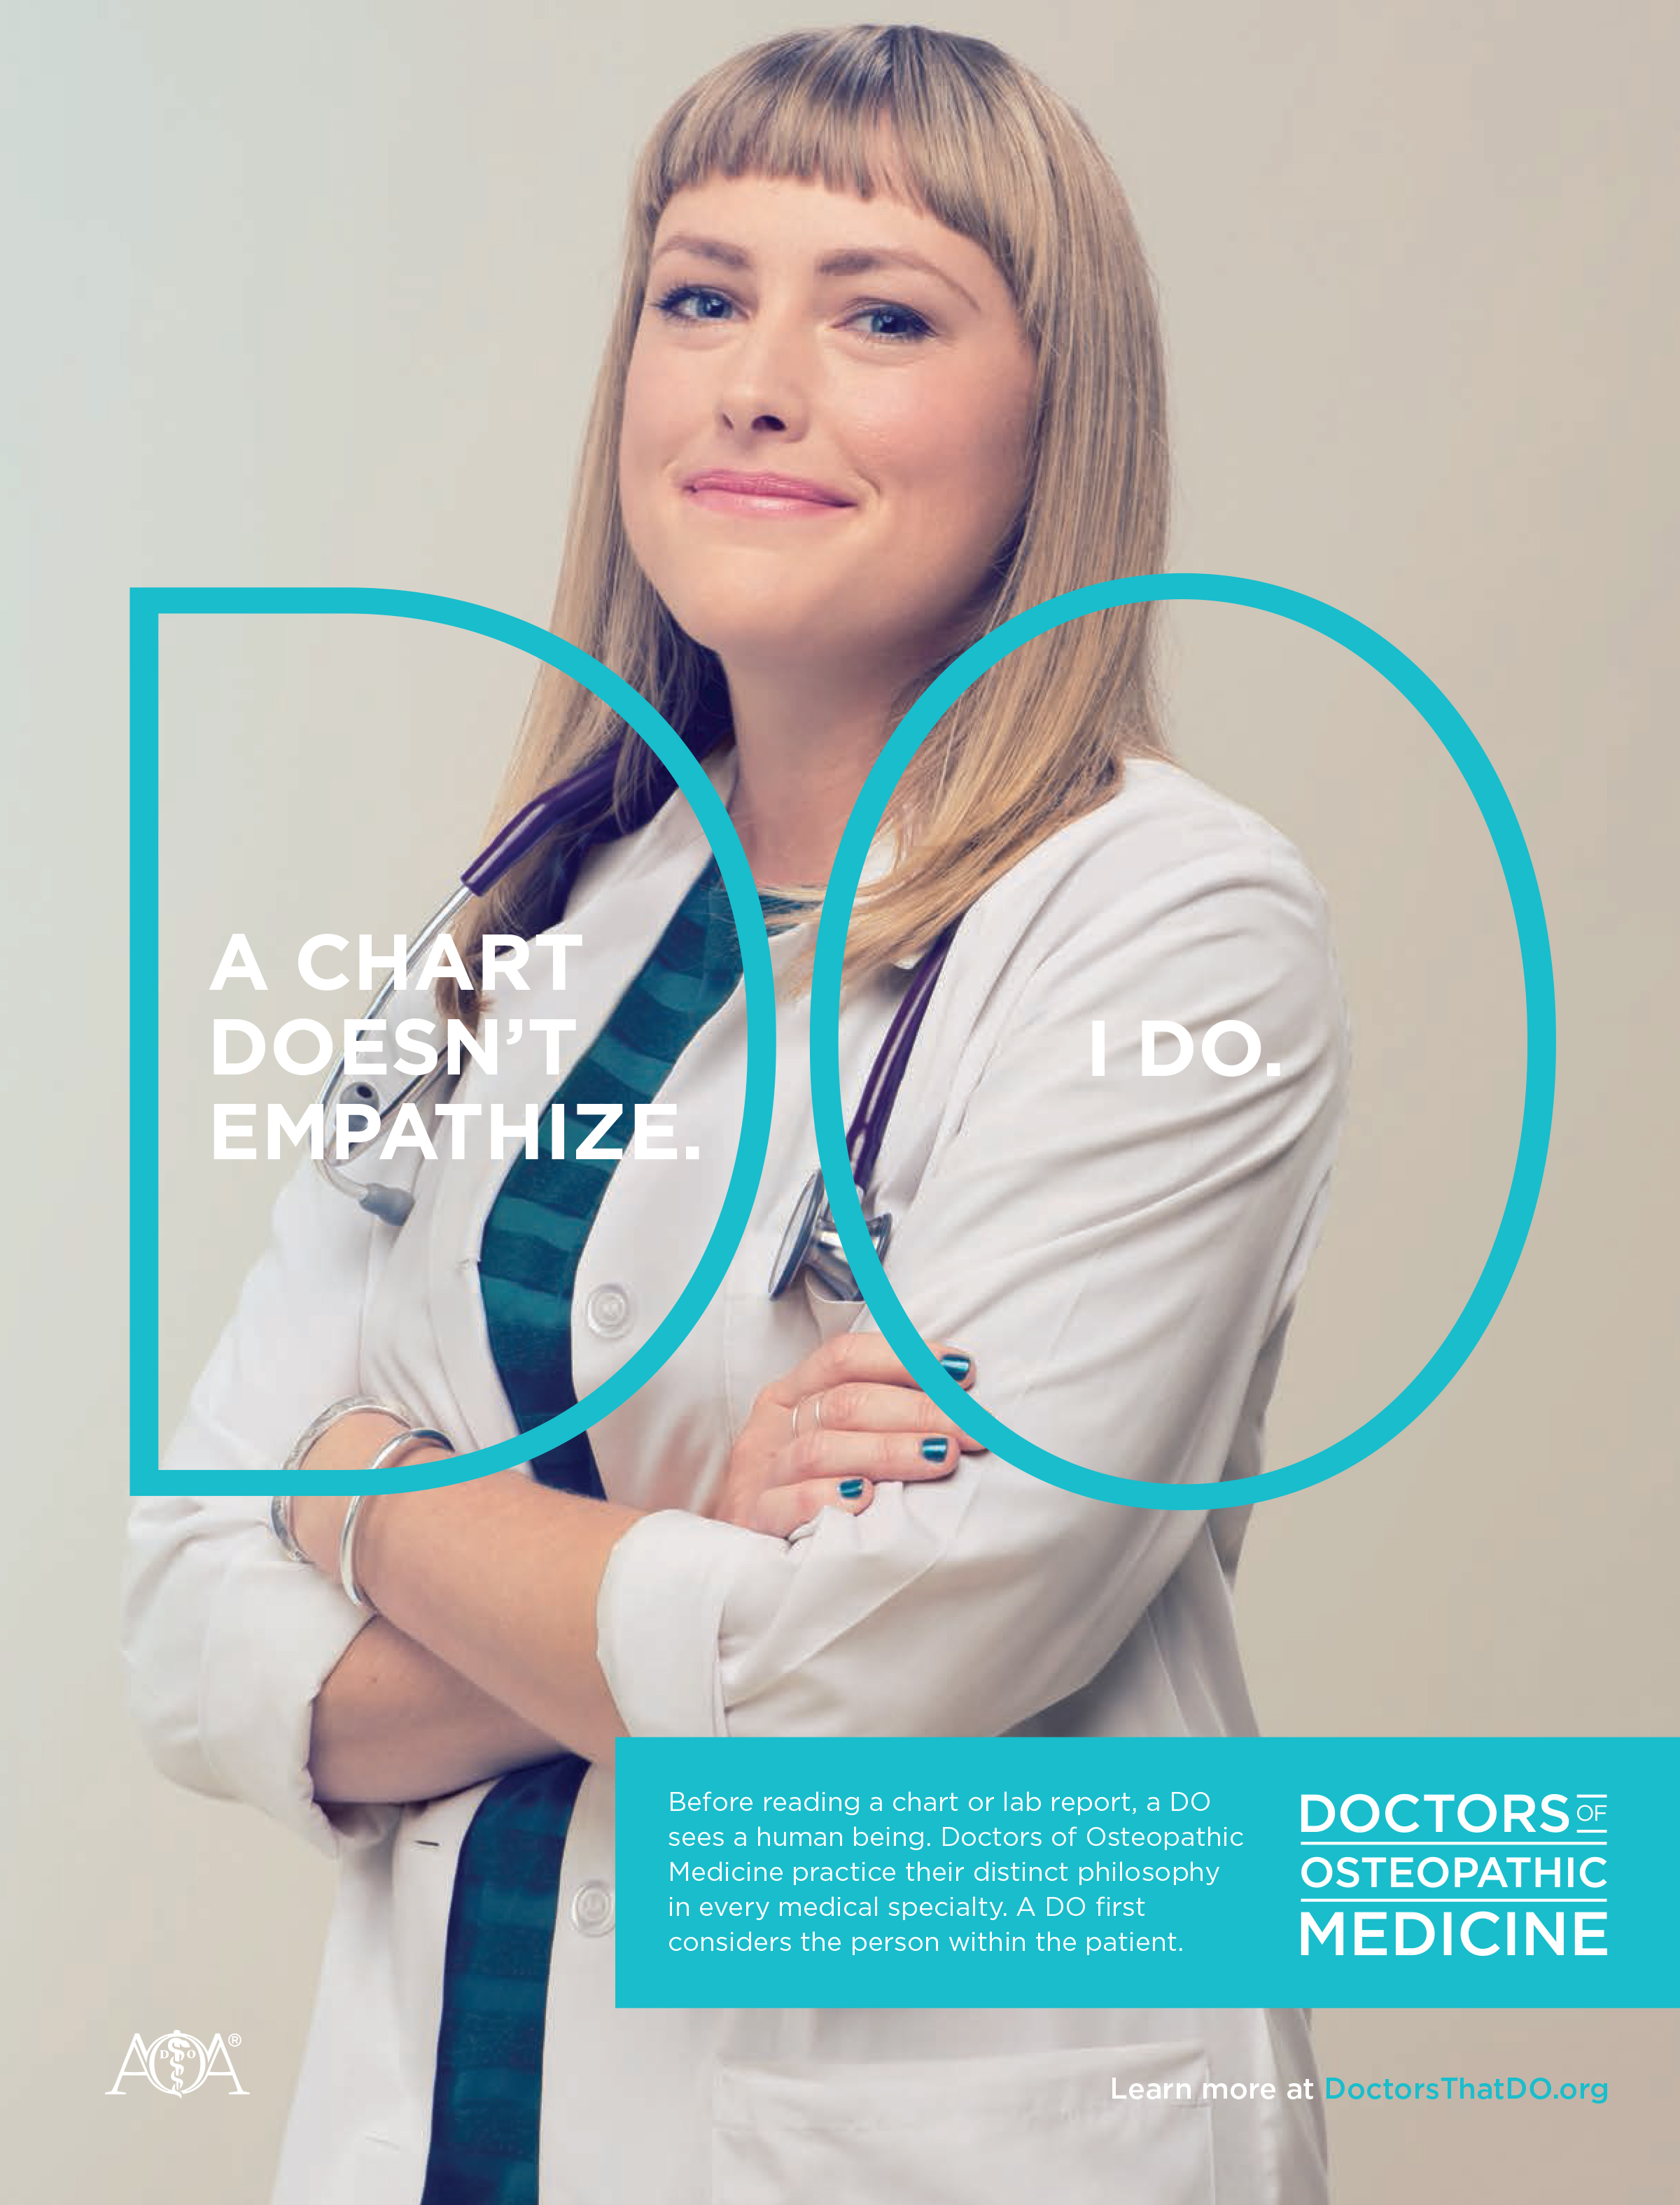 CCOM Alumni Part of Osteopathic Medicine Awareness Campaign